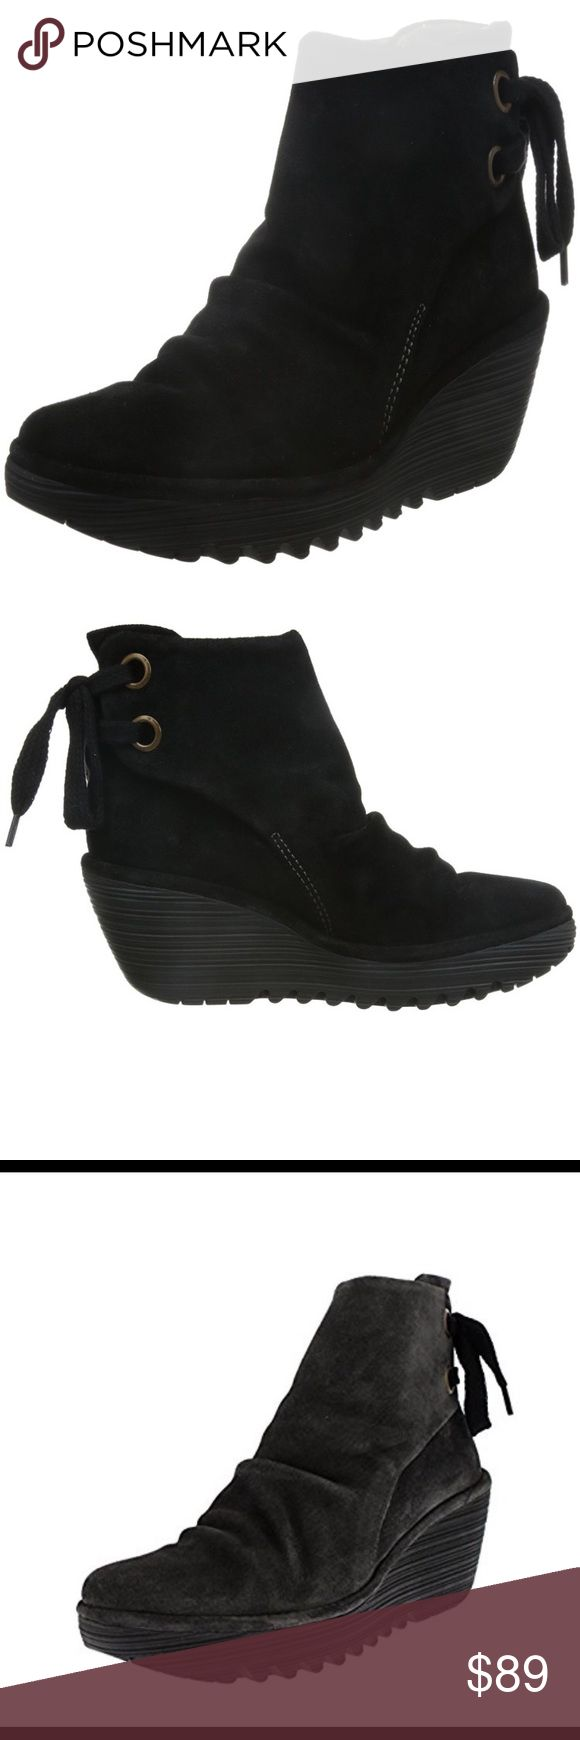 Fly London booties. - suede, black color. Fly London booties. - suede, black color. Fly London Shoes Ankle Boots & Booties